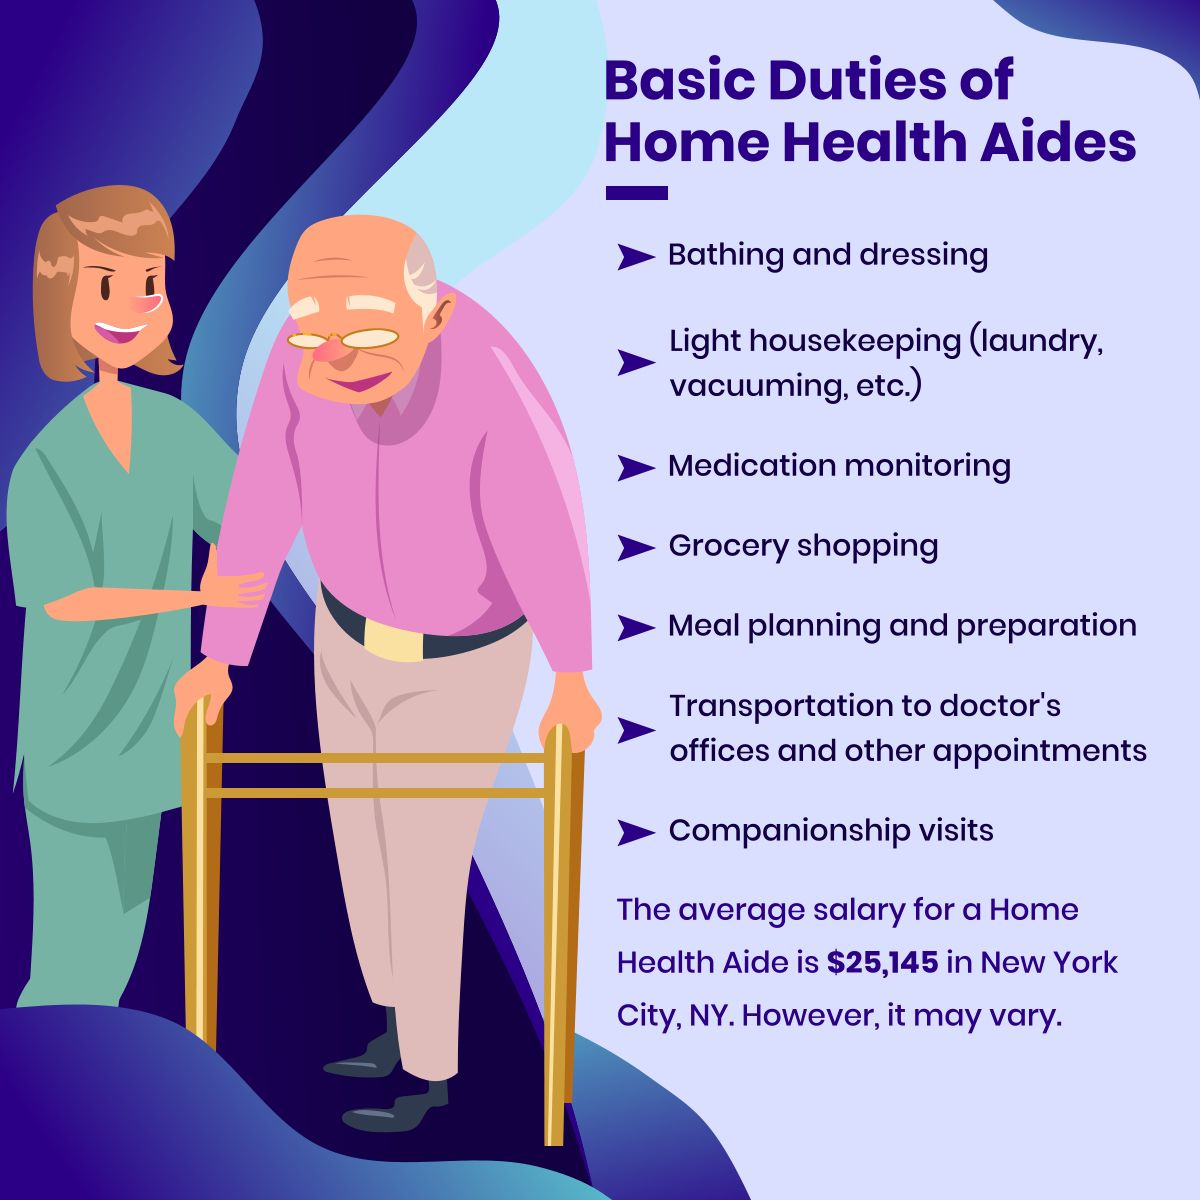 Basic Duties Of Home Health Aides Heartsinplace Homehealthaides Home Health Aide Home Health Health Care Aide